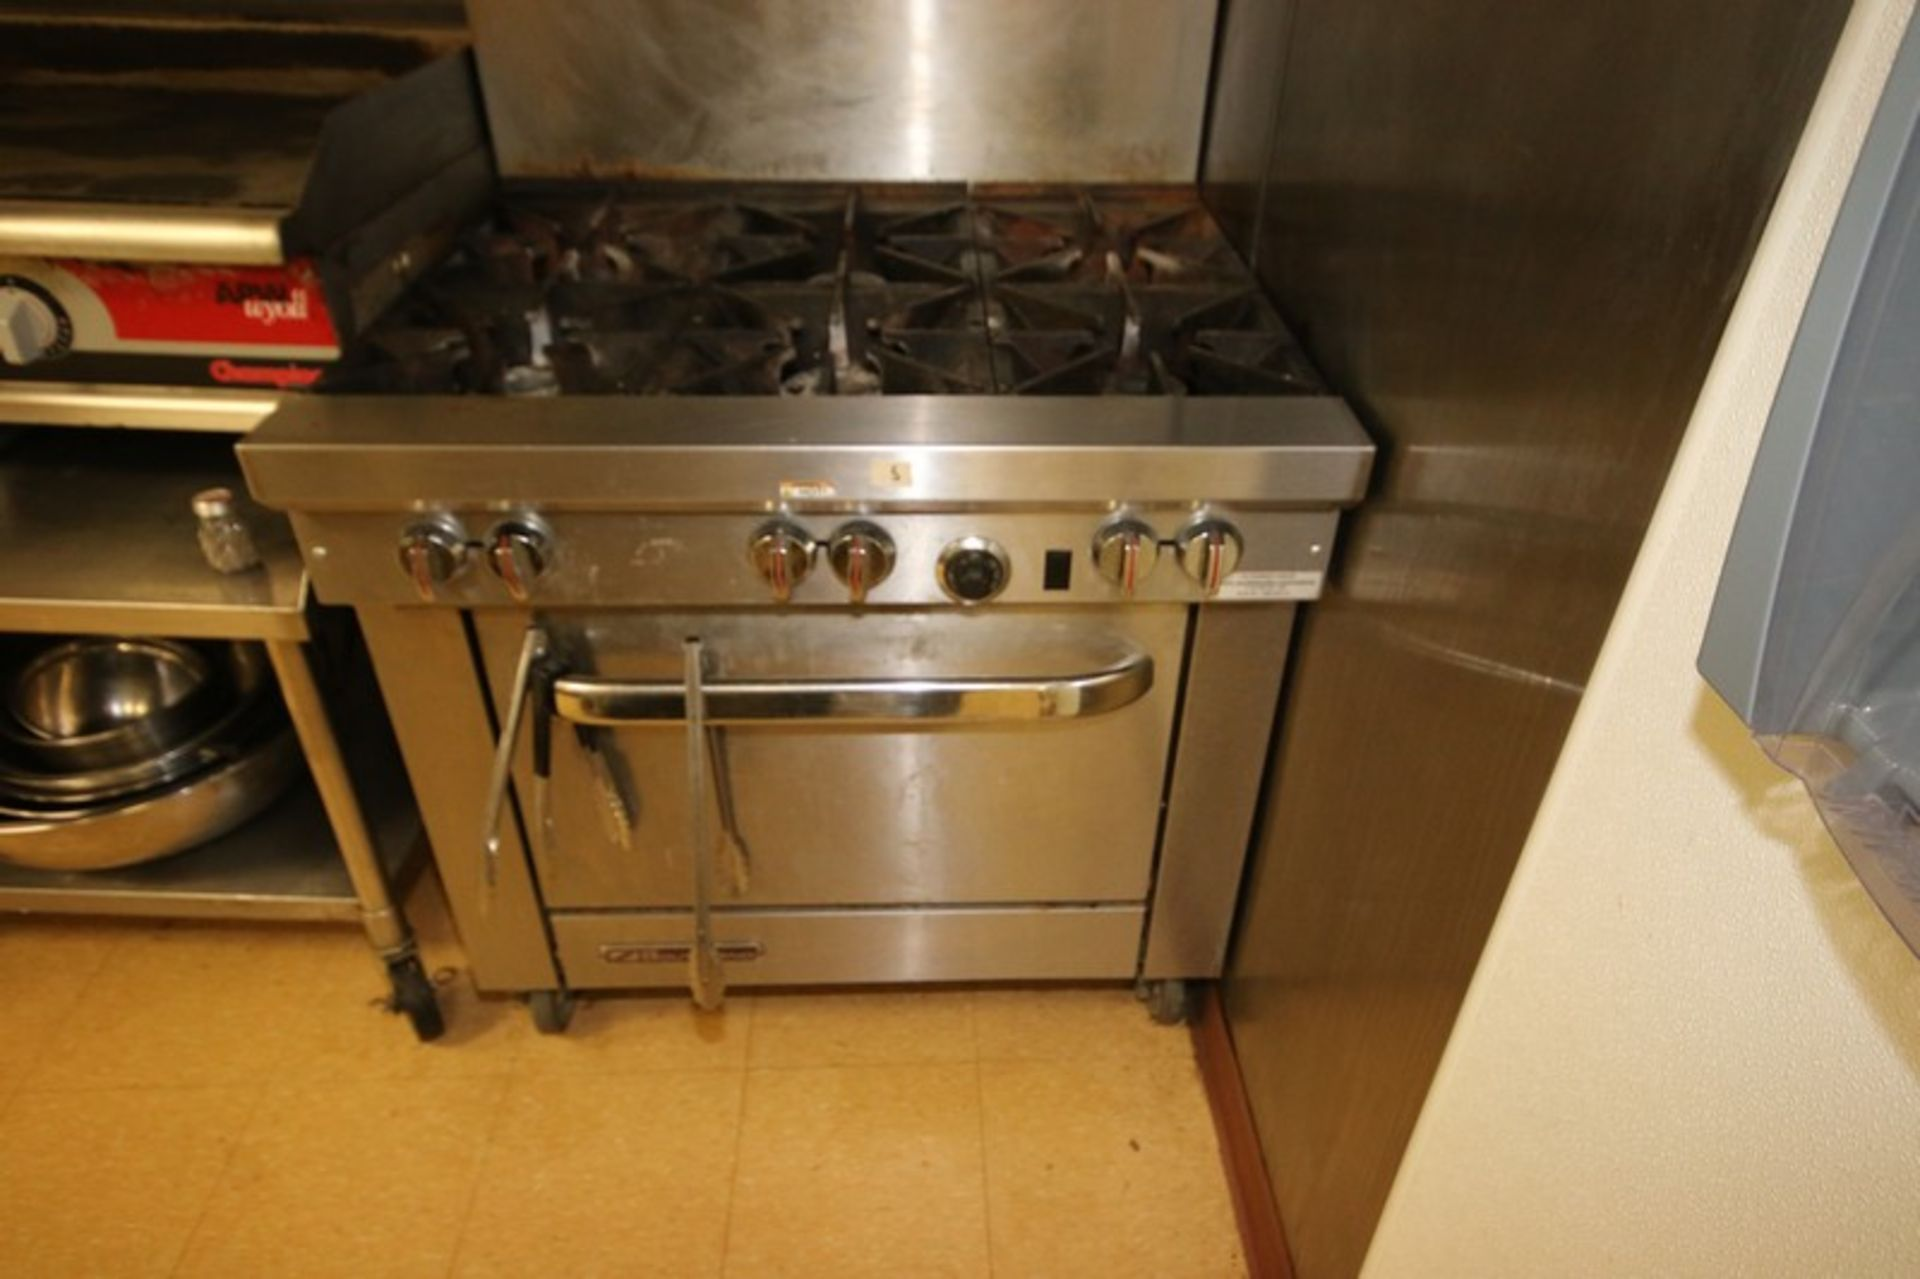 Southbend S/S 6-Burner Stove Top & Oven, S/N 10K13111, with S/S Top Shelf, Mounted on Portable Frame - Image 3 of 5